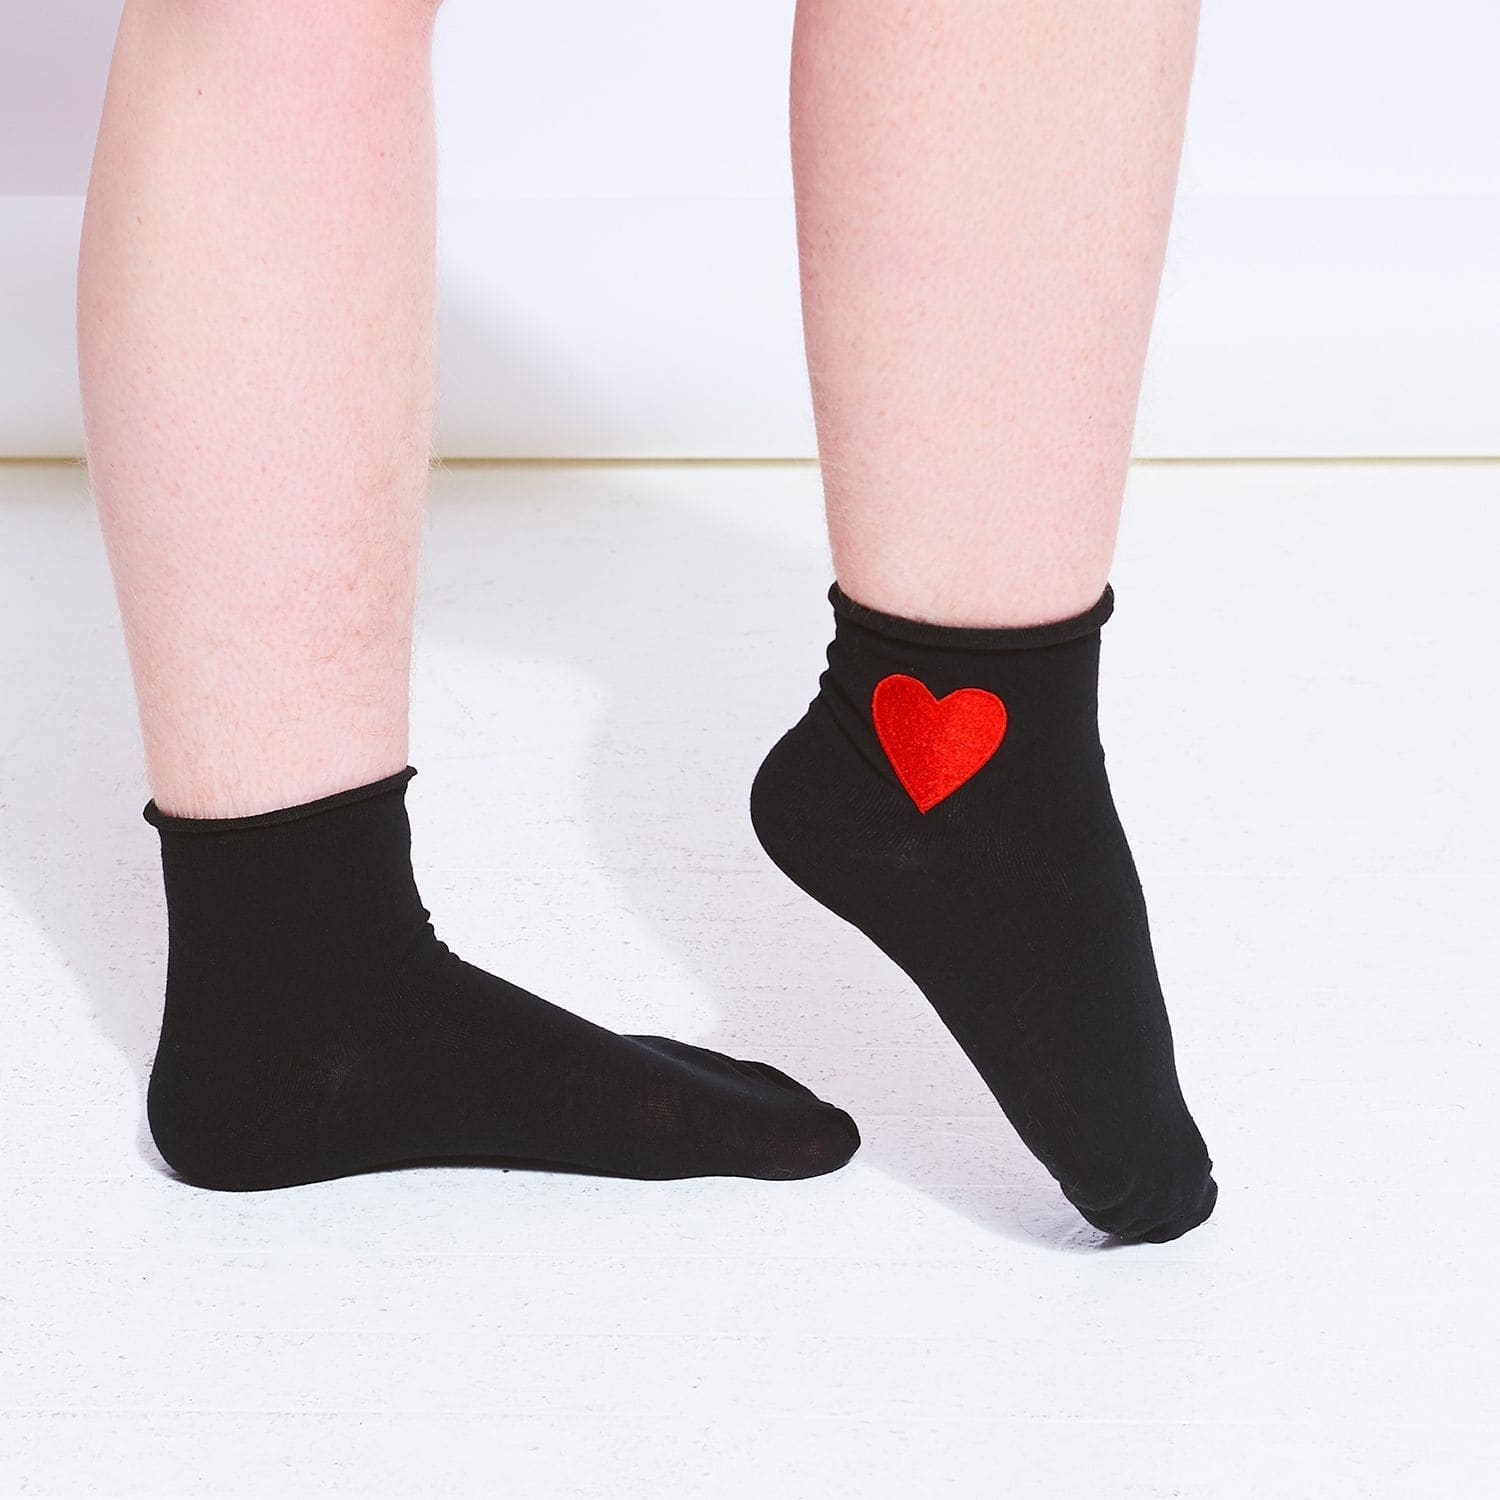 Heart Ankle Socks - Black 90s, Black, Black and Red Socks,